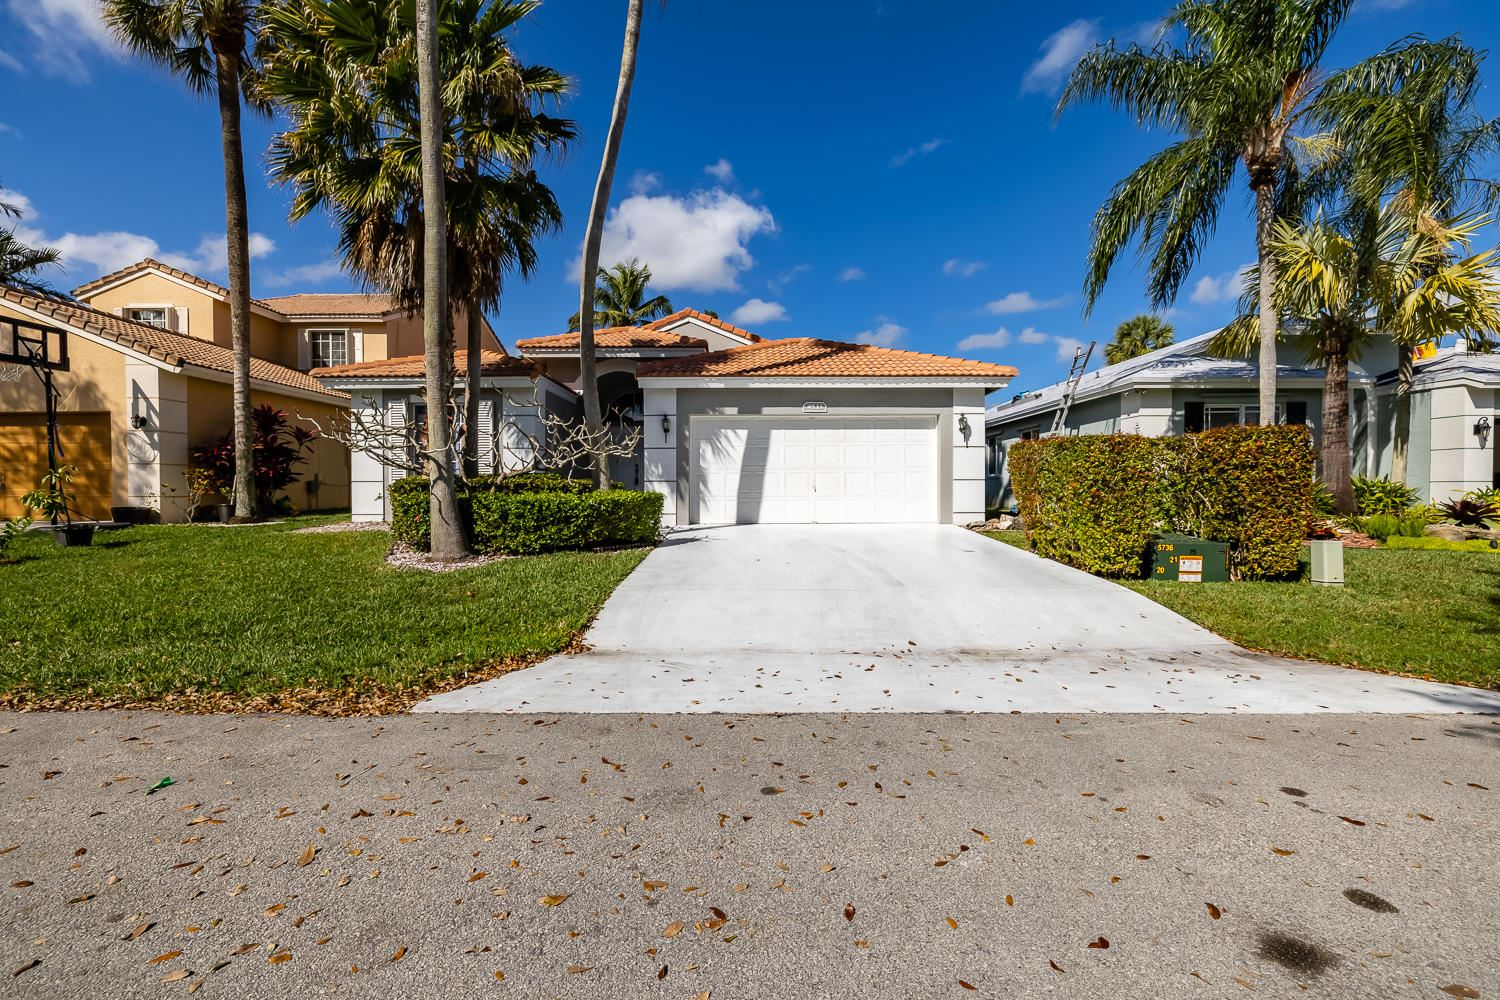 Photo of 4533 NW 7th Place, Deerfield Beach, FL 33442 (MLS # RX-10694420)